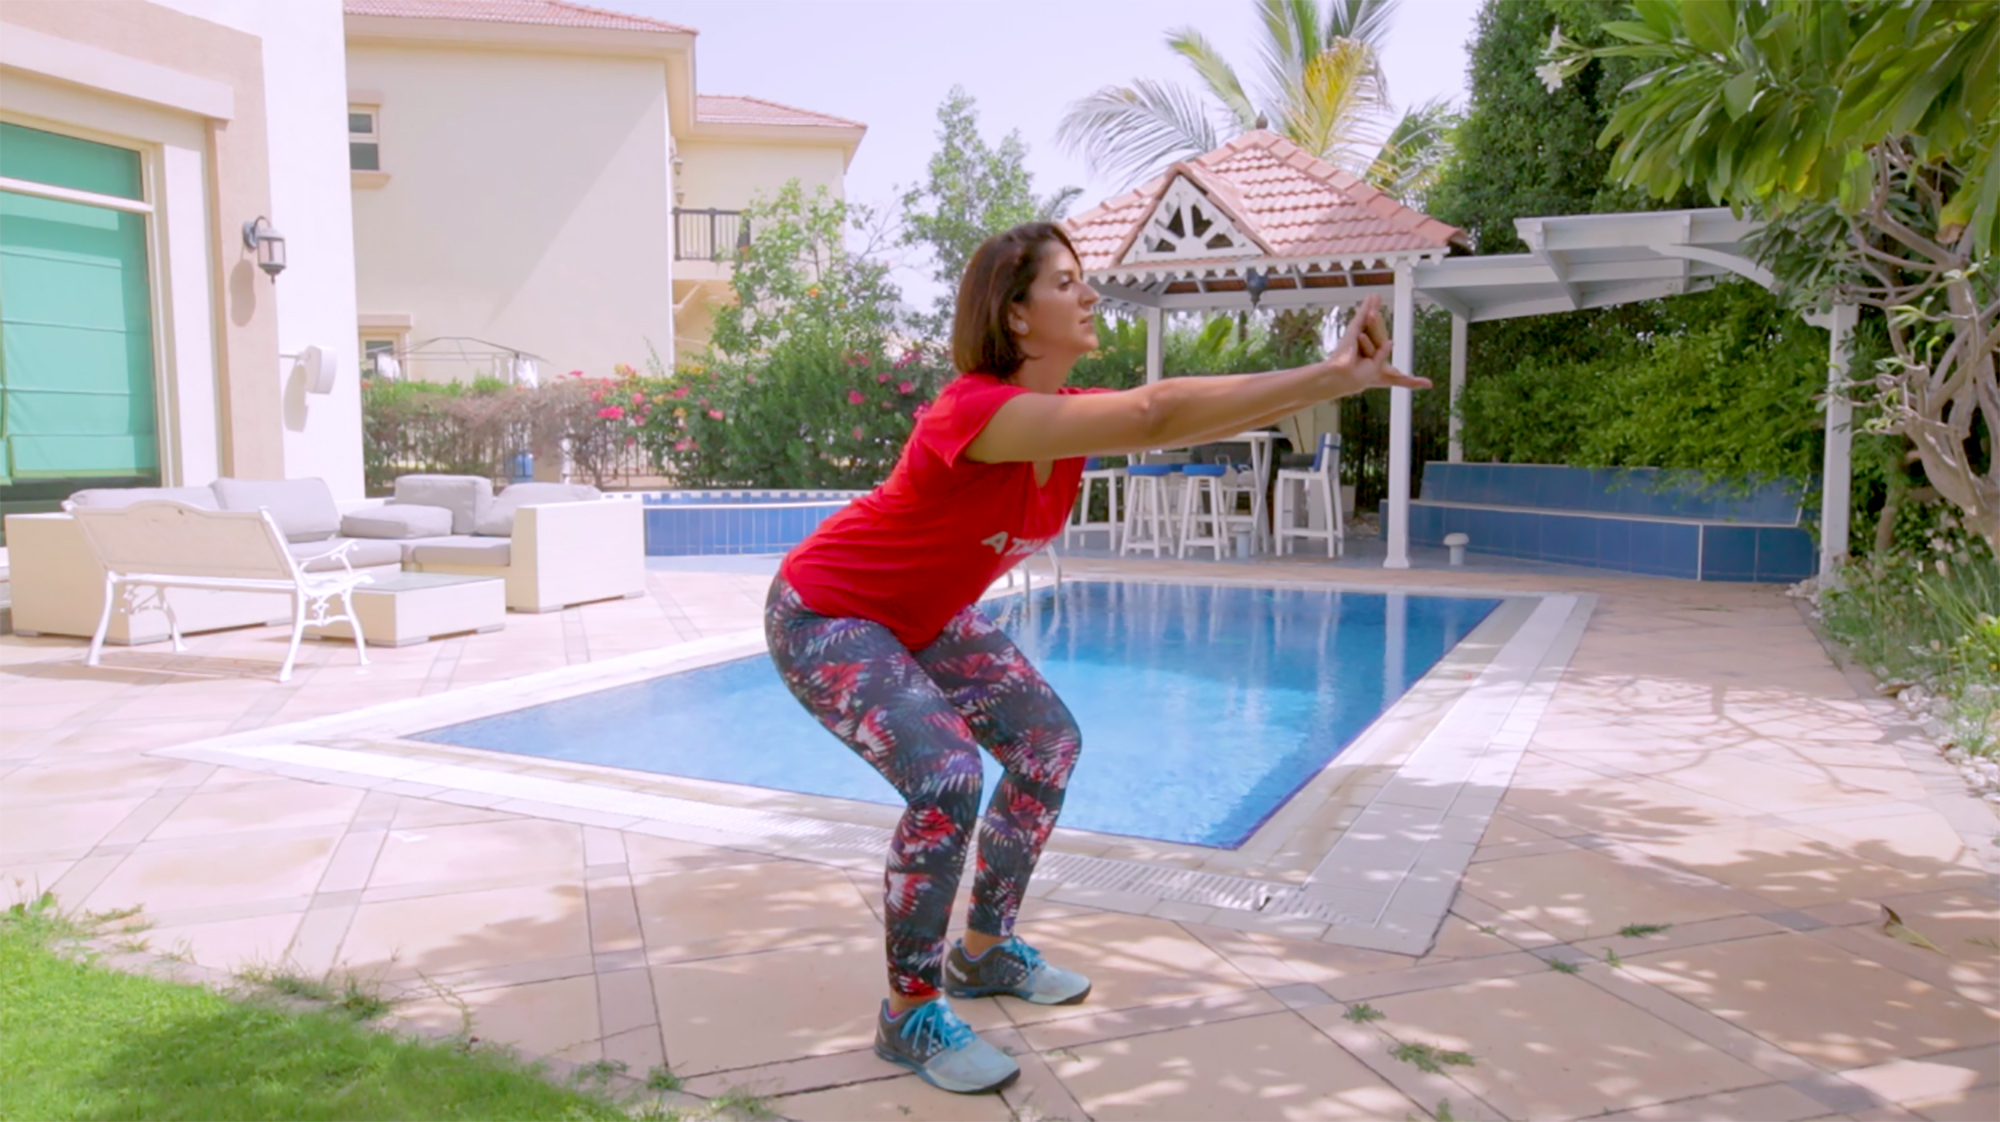 MOVE IT WITH MONA – BEGINNER WORKOUTS